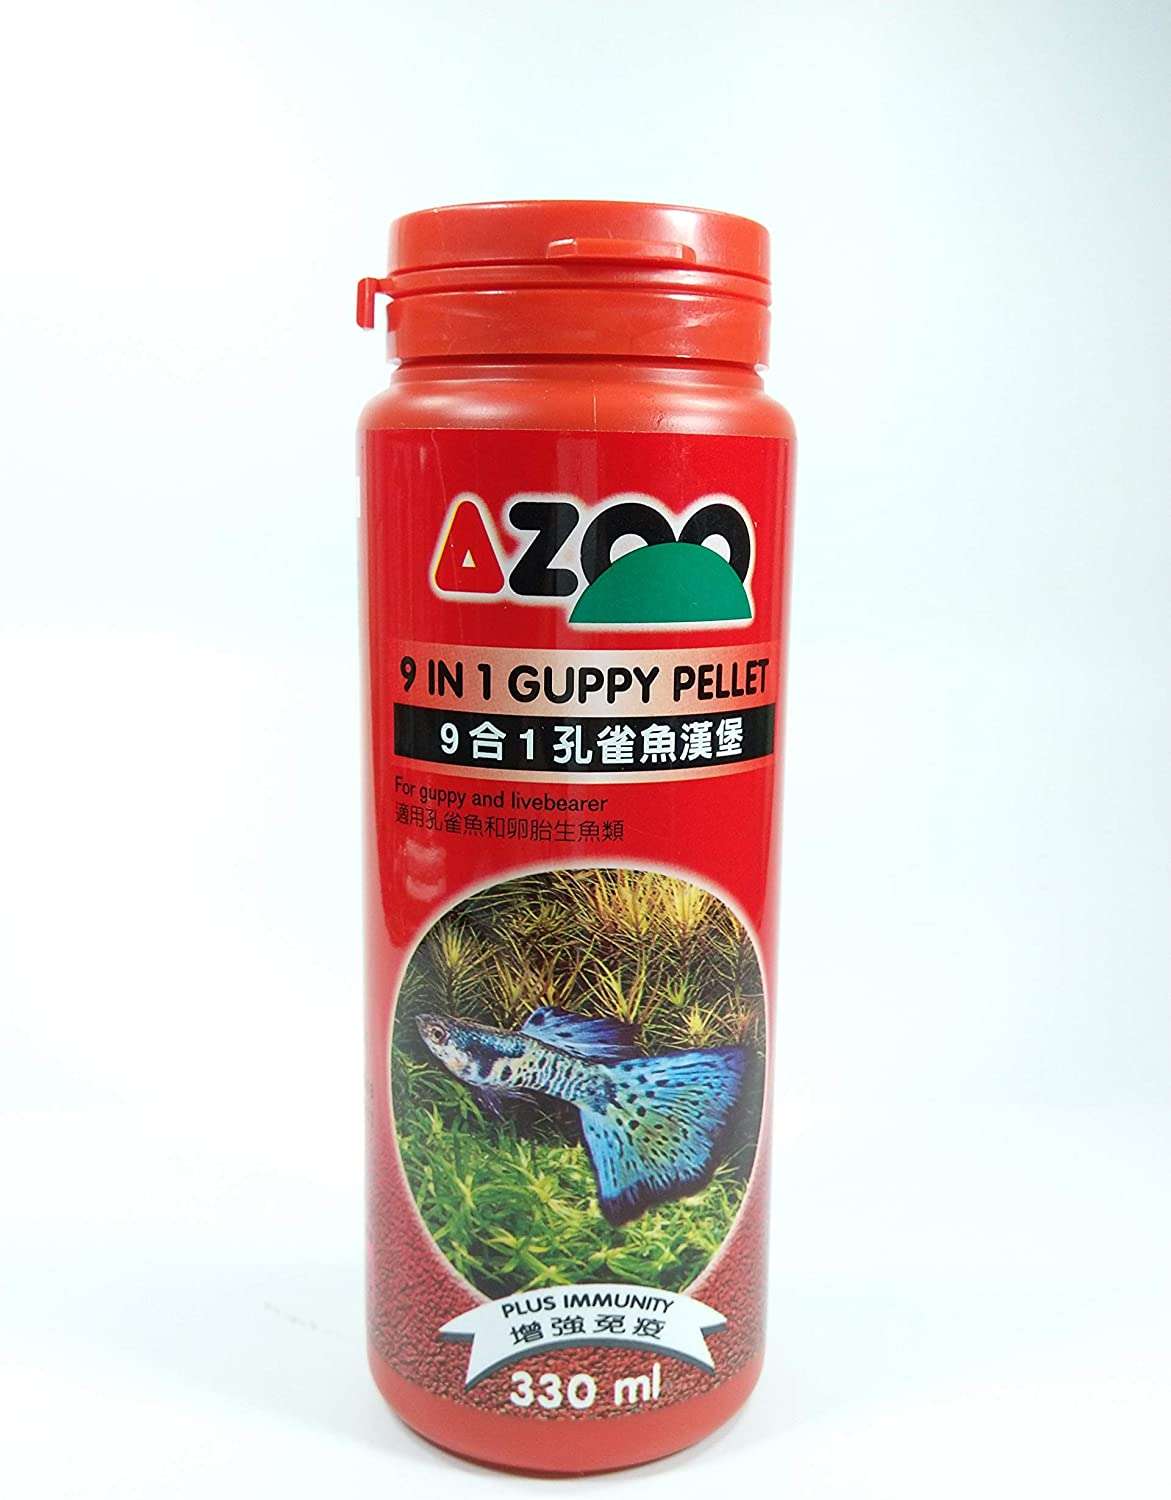 AZOO 9 in 1 Guppy Pellet for Guppy and Livebearer Fish Food 330ml